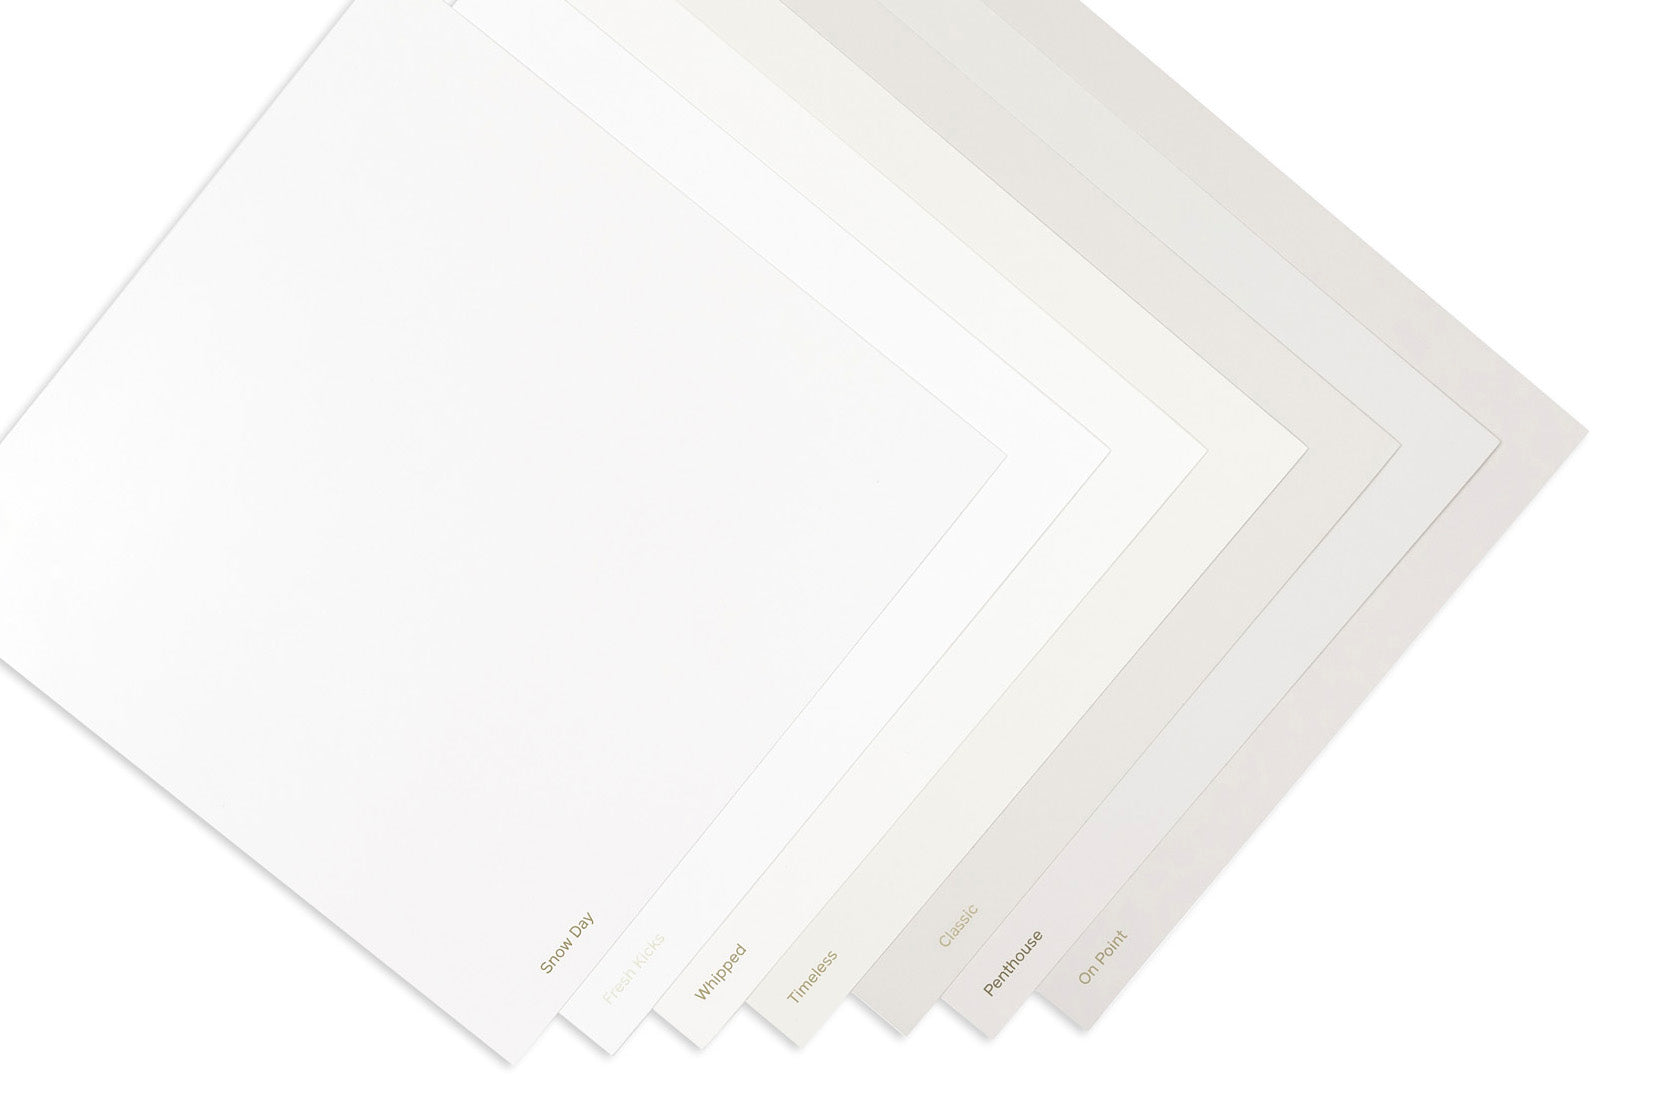 Painting your trim white? These are the best white paint colors for trim, plus how to make sure you choose the right shade of white.